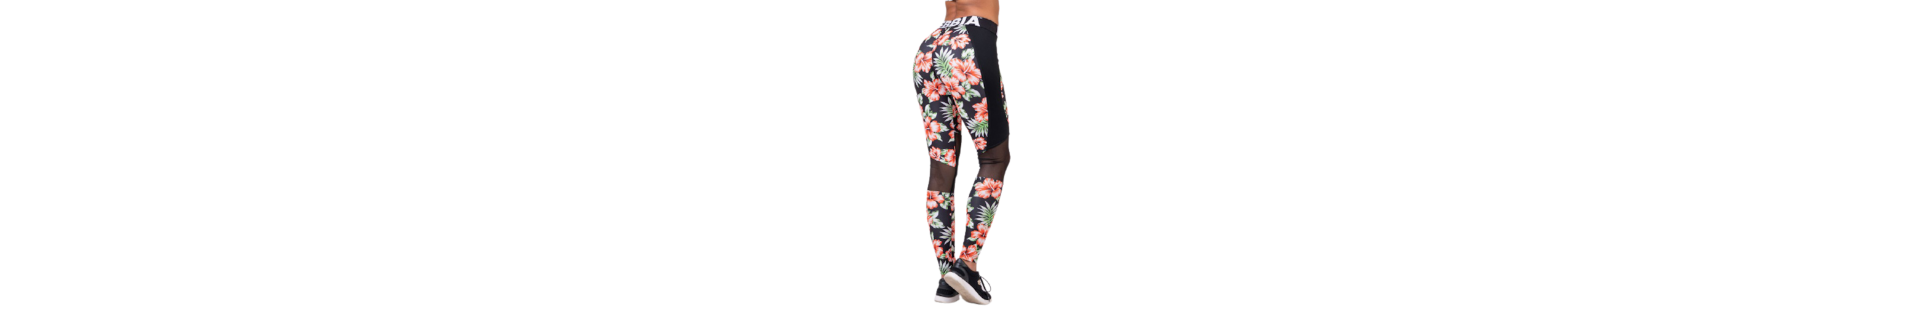 Flower printed leggings and with roses, daisies. Romance and style.